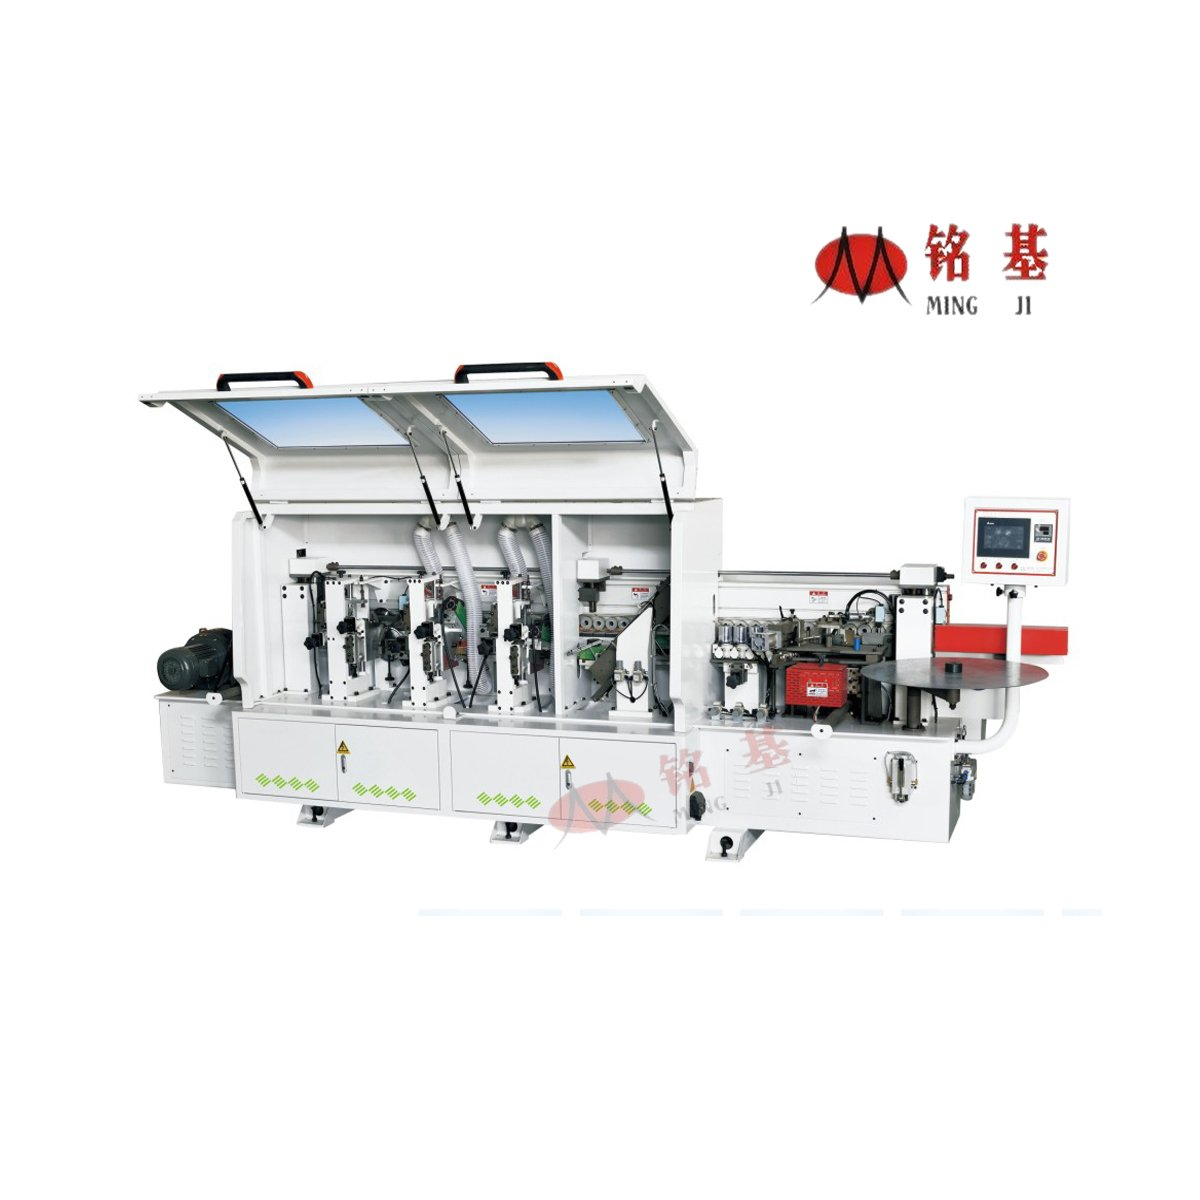 Foshan Mingji SBS-336B Automatic egde banding machine with 6 stations